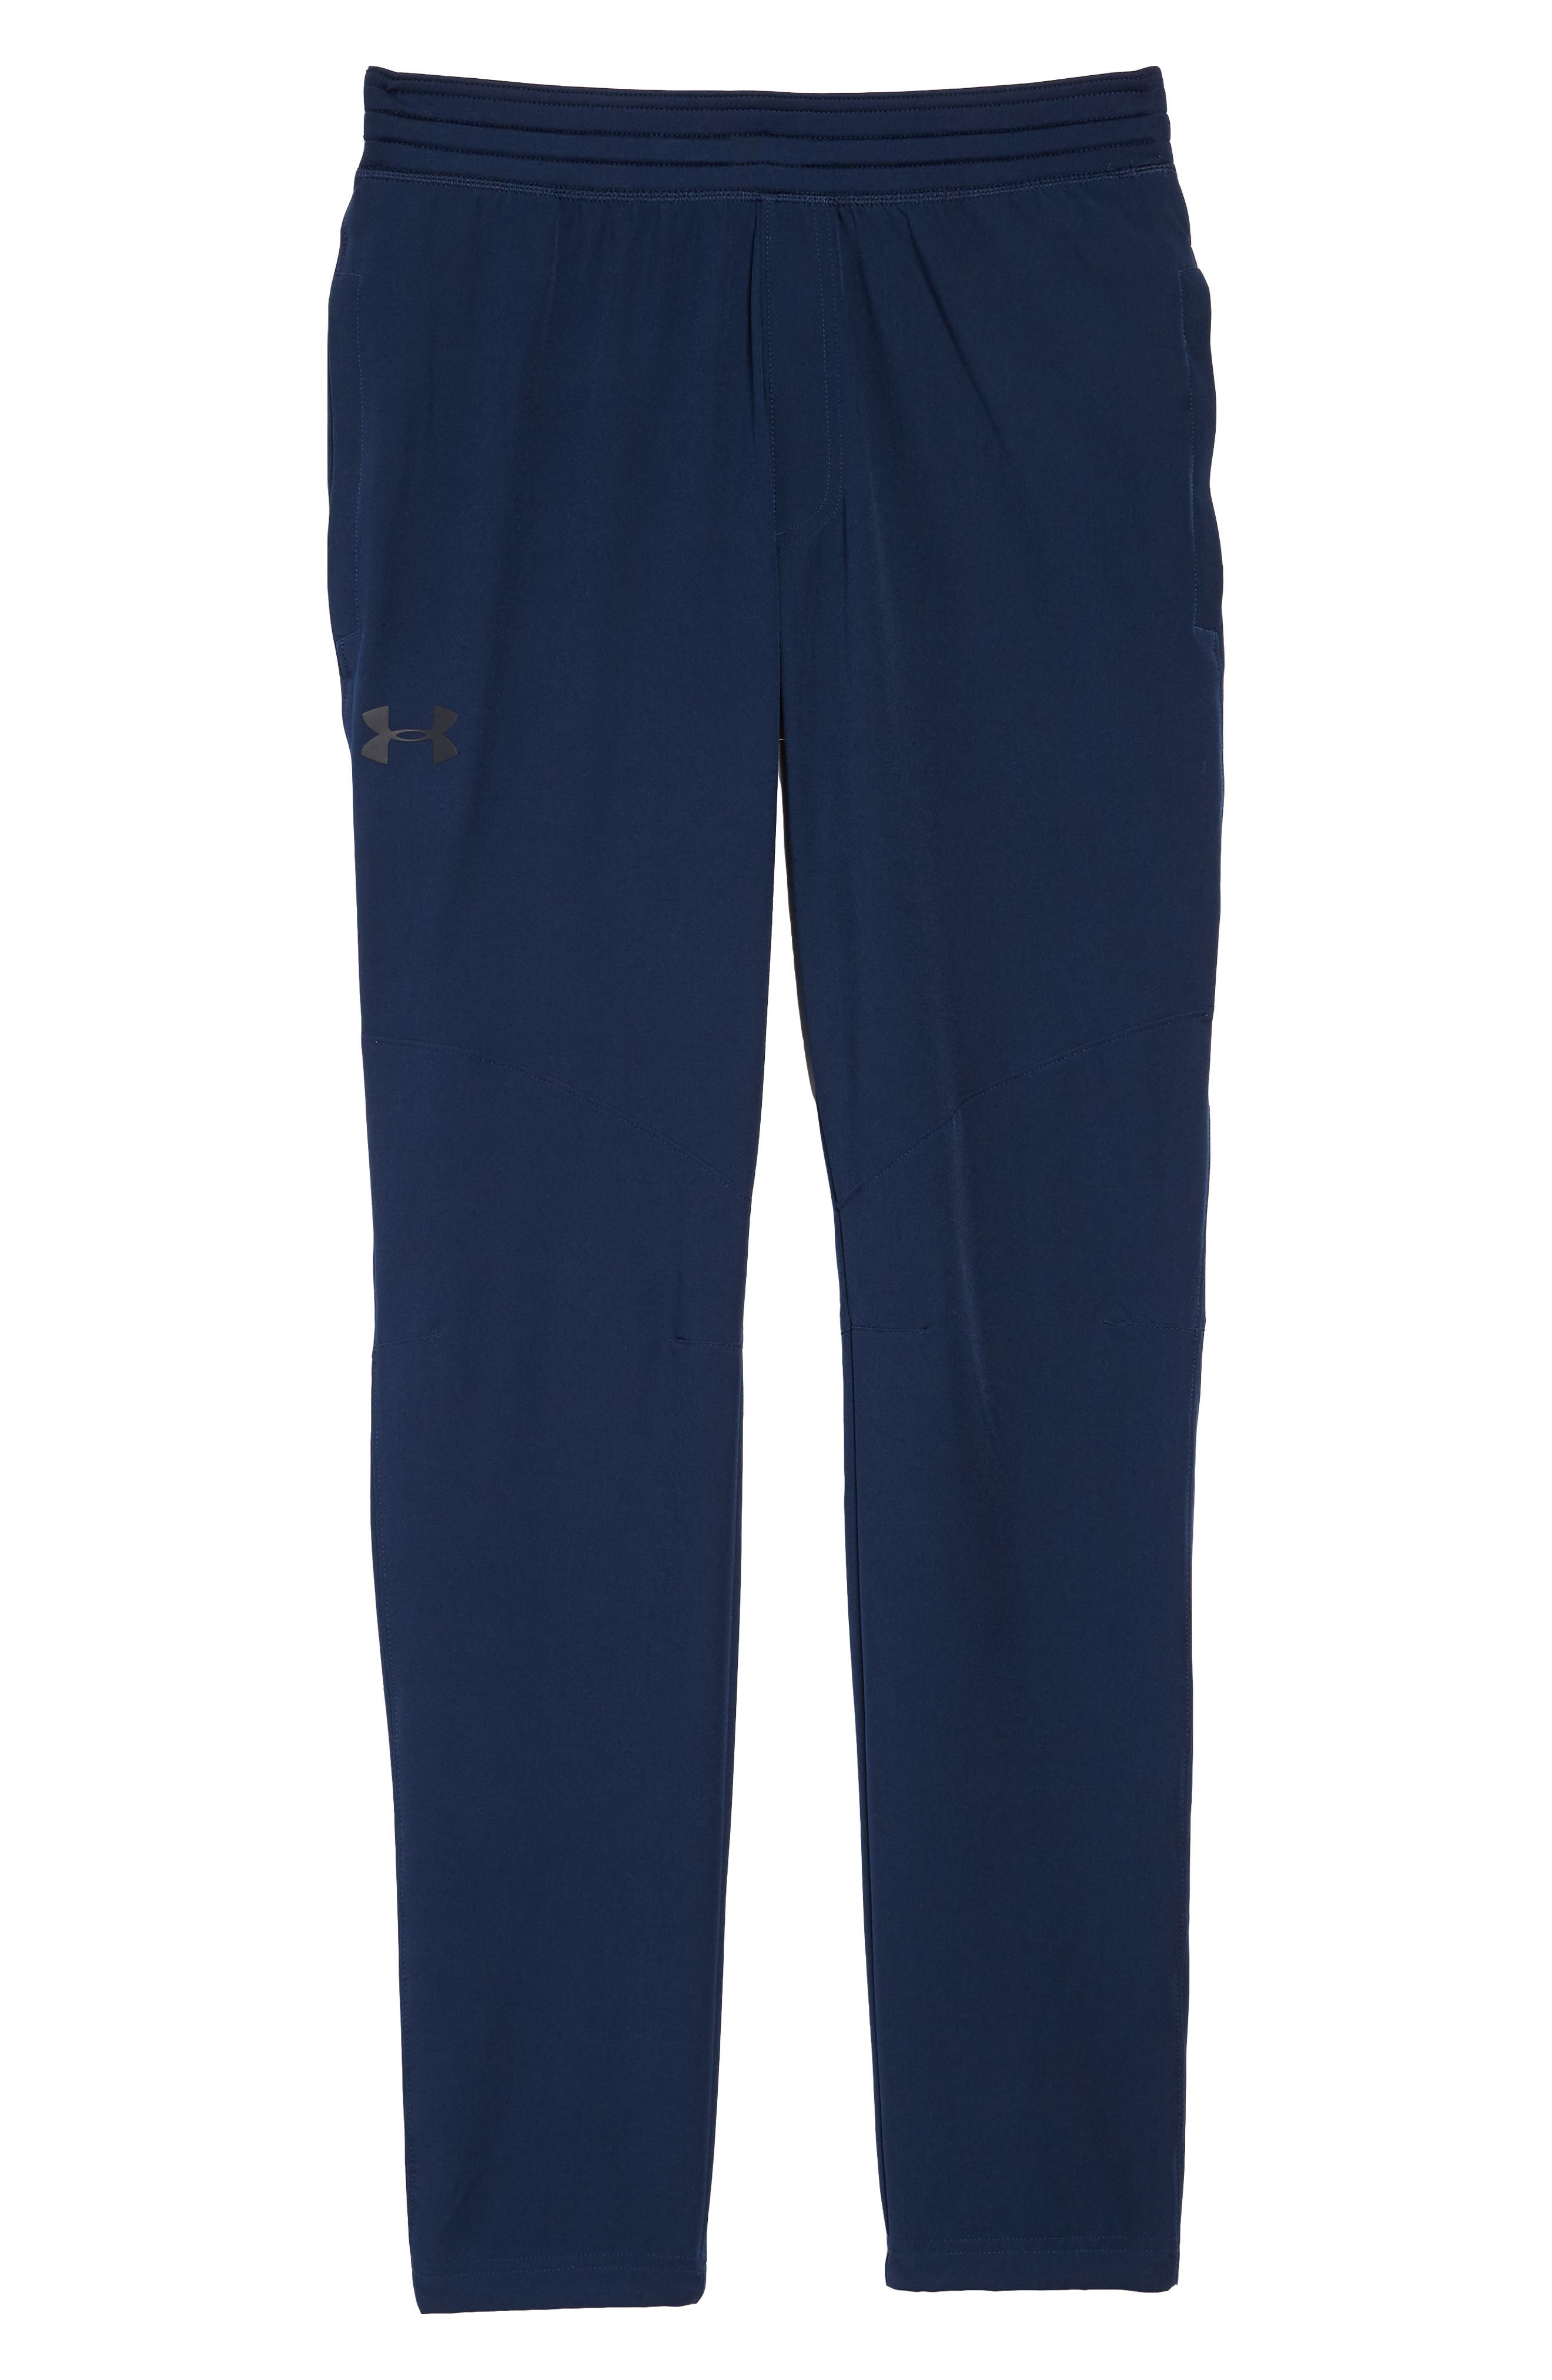 Fitted Woven Training Pants,                             Alternate thumbnail 33, color,